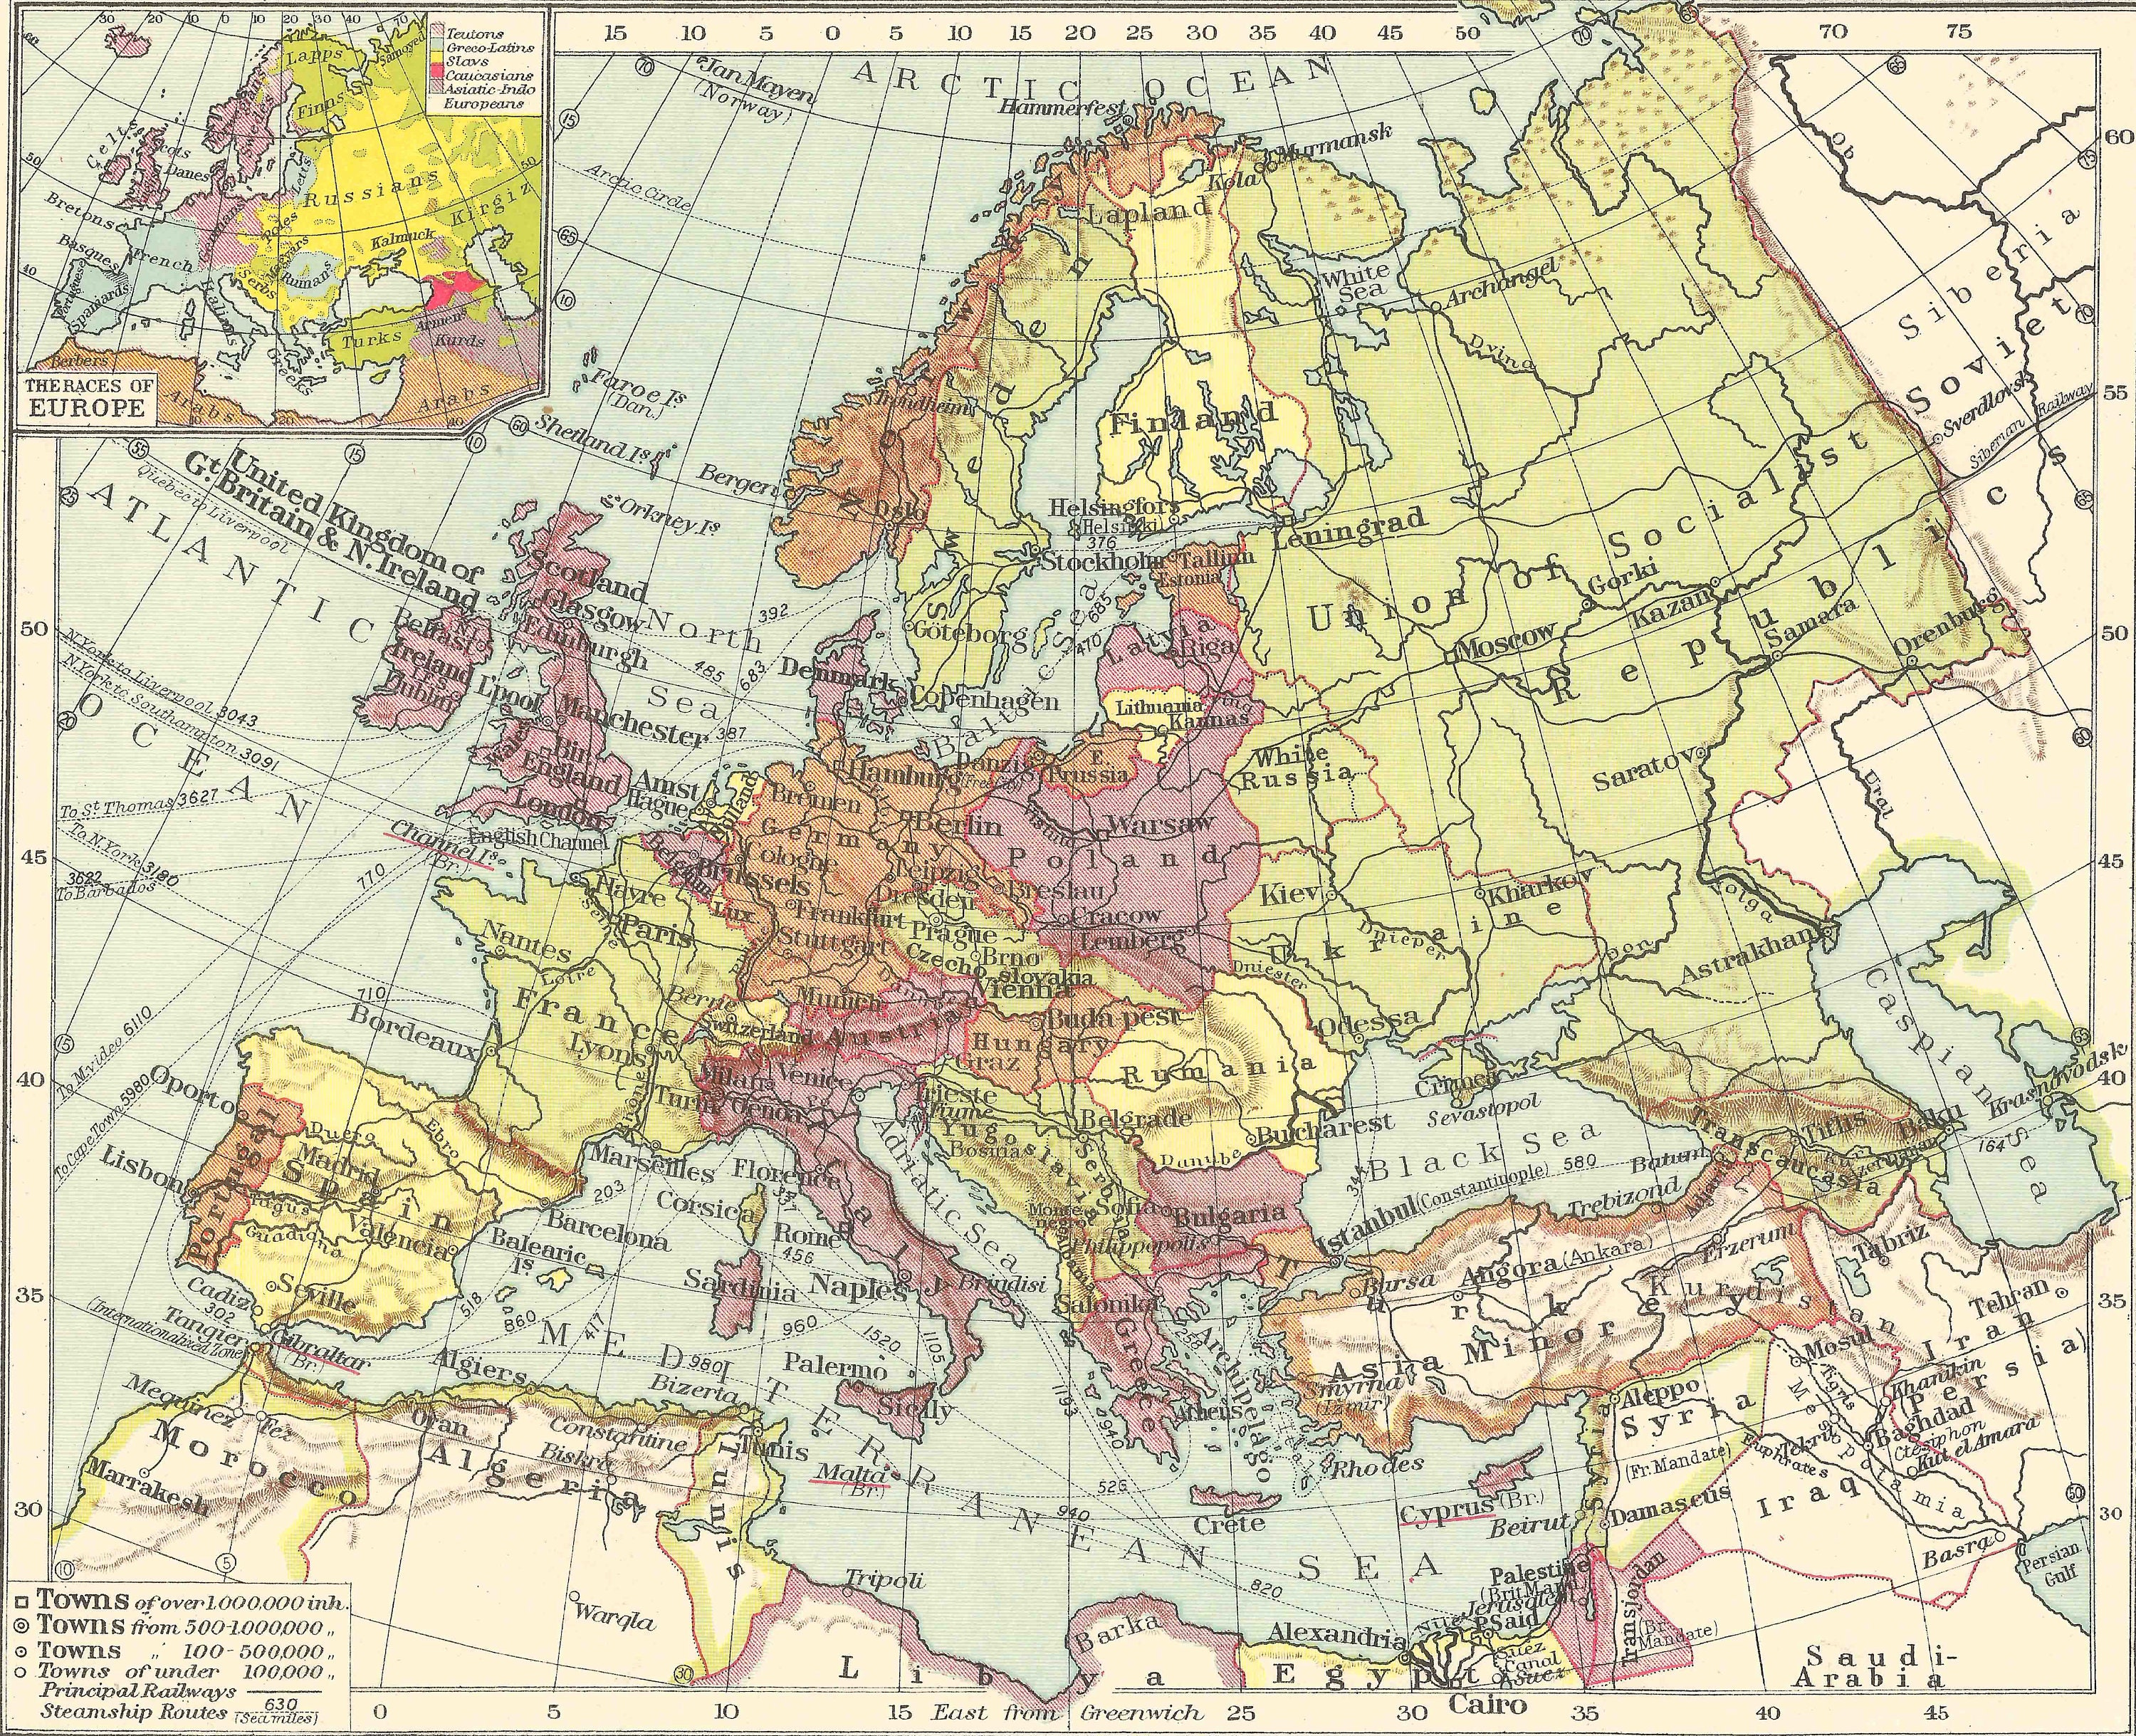 1920s Europe Map.Europe Political 1920s Maps Travel Adventure Maps For Home Etsy